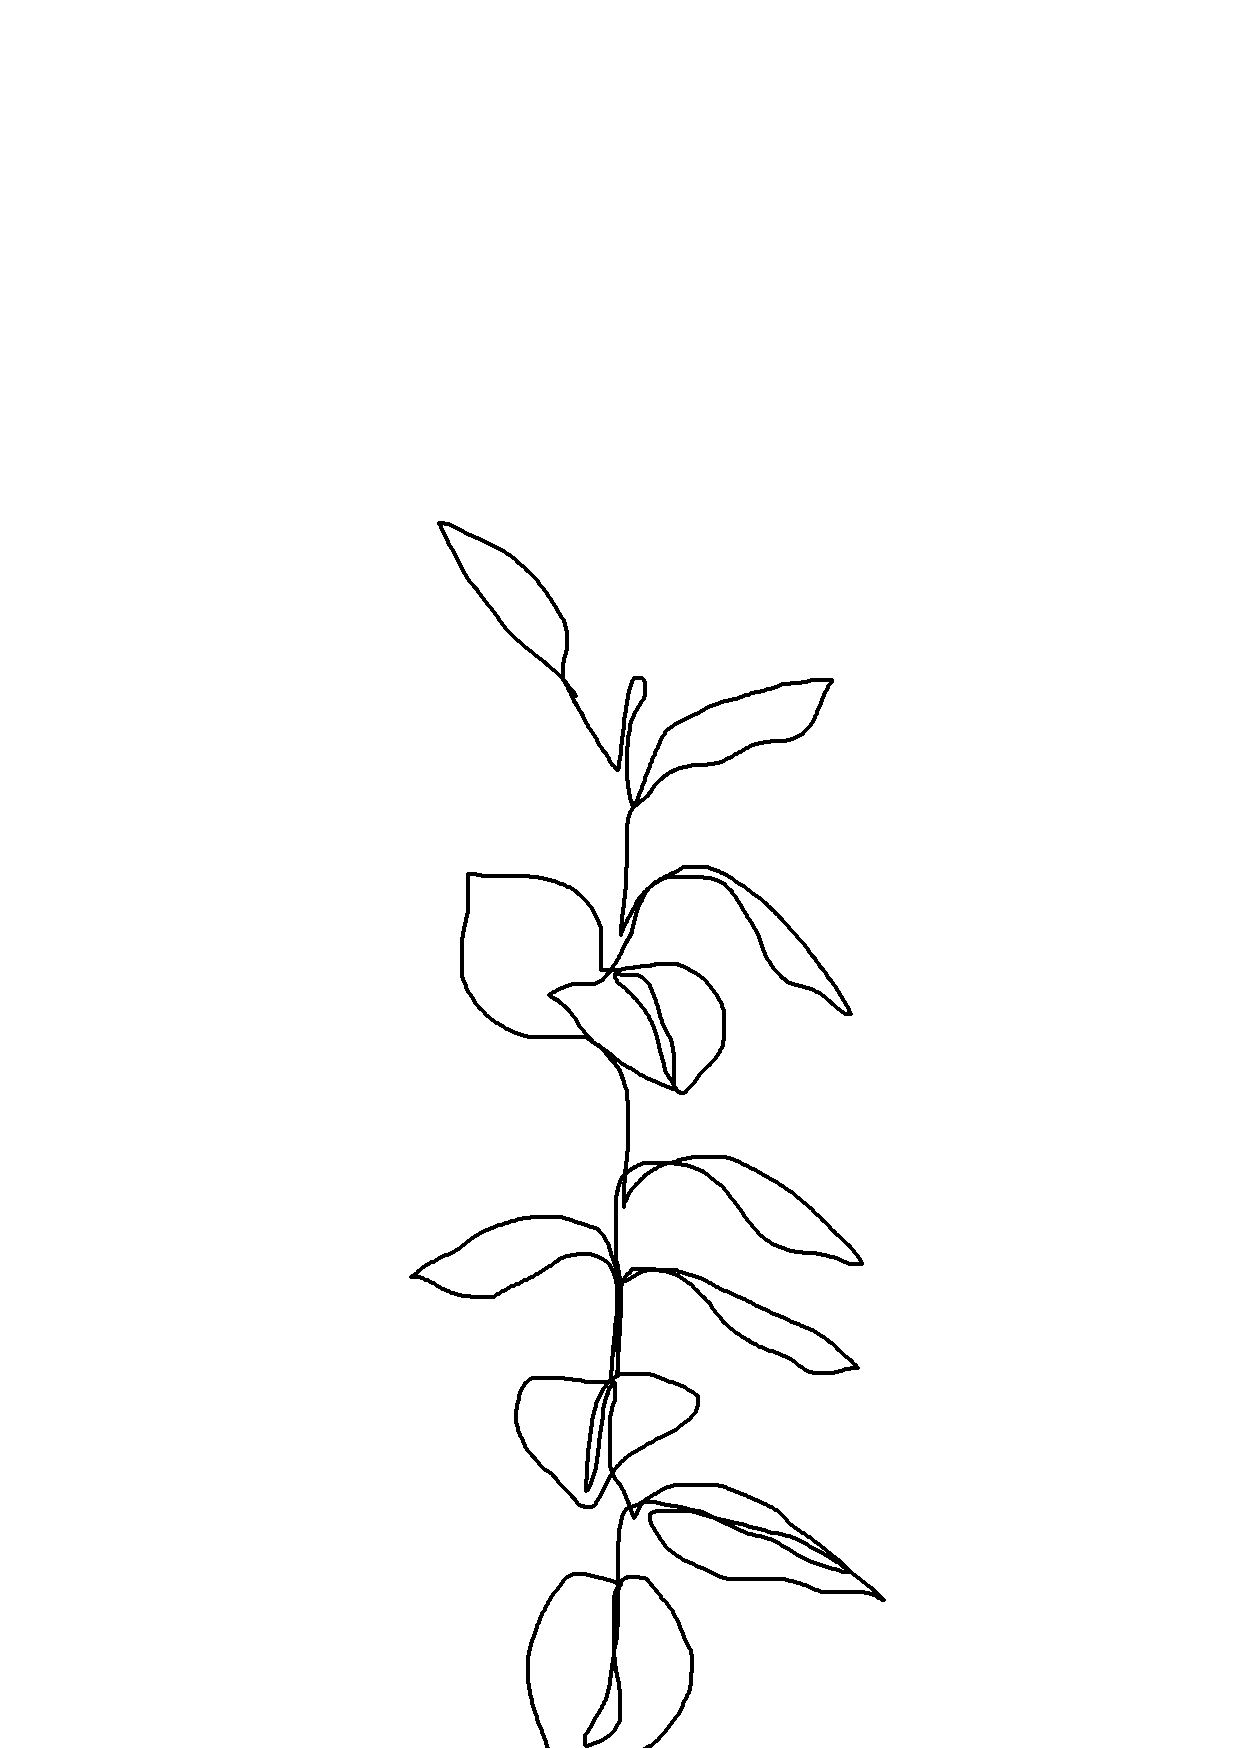 One Line Minimal Artwork Plants And Leaves Minimalist Line Drawing Instagram Thecolourstudyetsy Https Line Art Drawings Minimalist Drawing Line Art